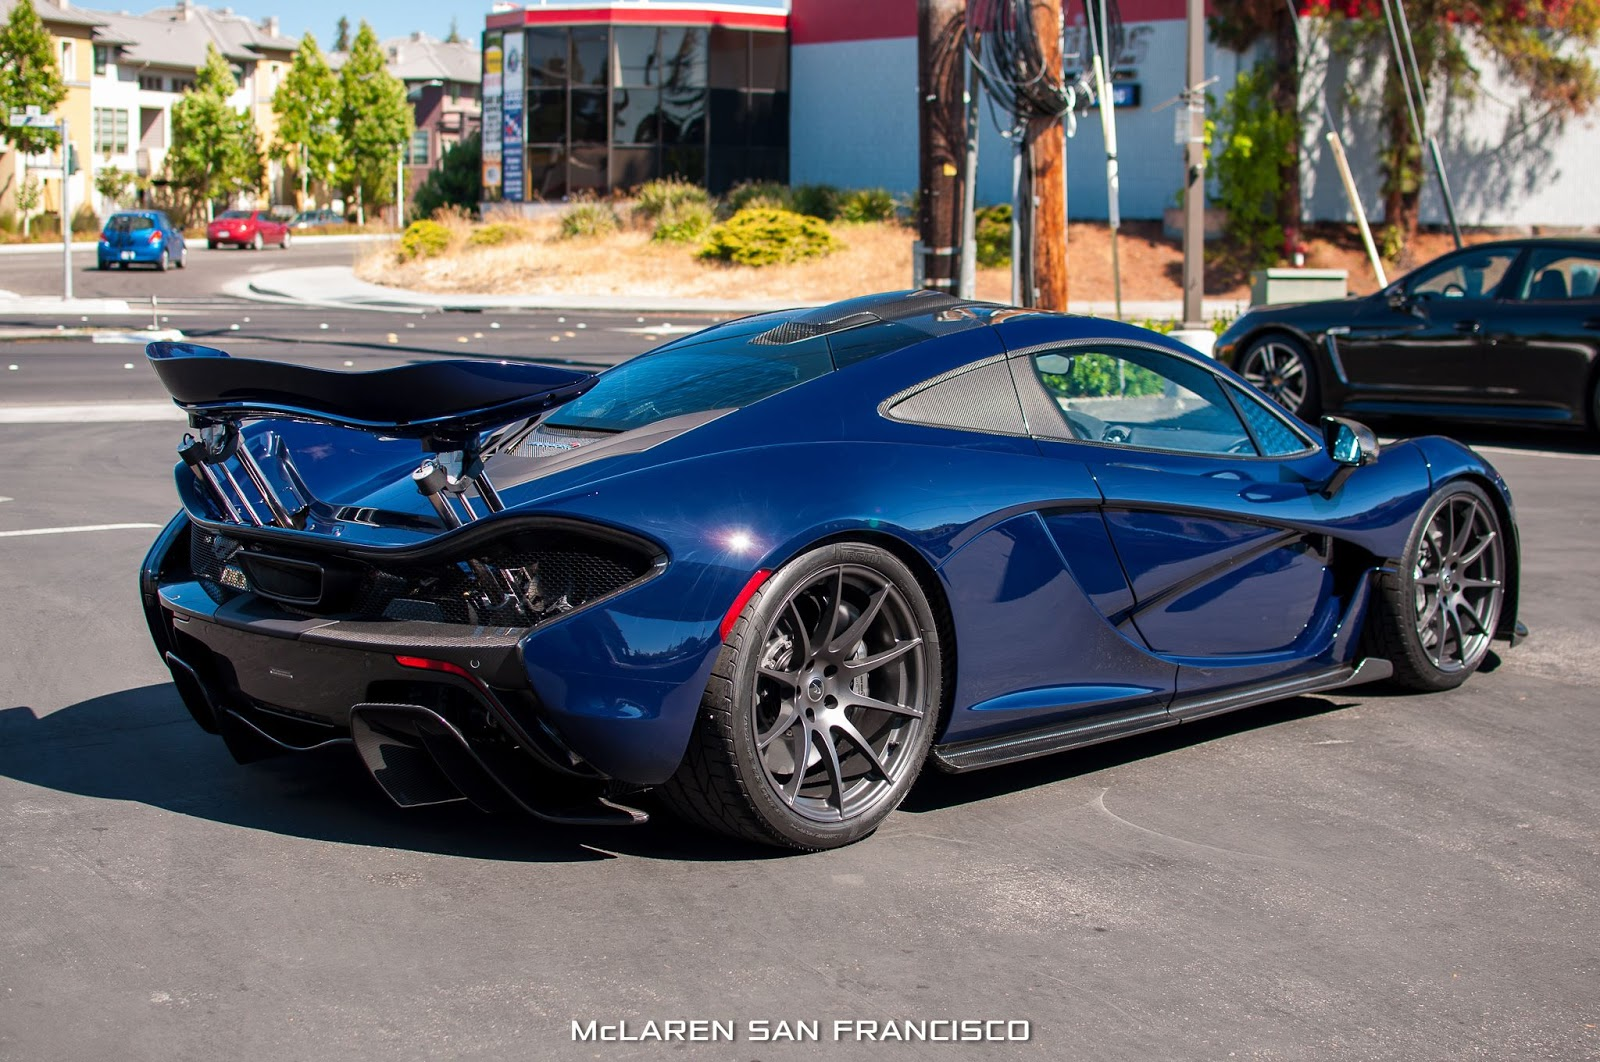 new mclaren p1 in custom blue shade arrives in san francisco 45 pics carscoops. Black Bedroom Furniture Sets. Home Design Ideas